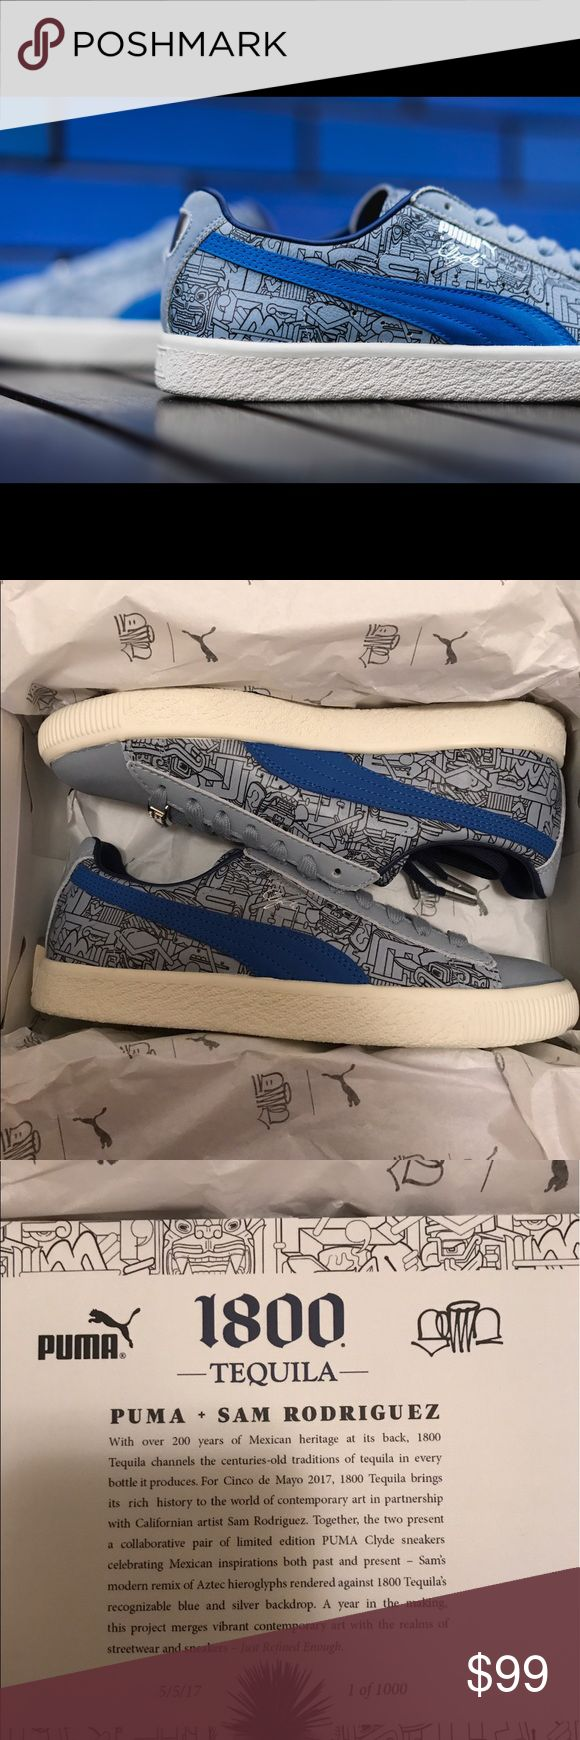 "Puma Clyde Sam Rodriguez 1800 Tequila 365060-01 Puma Clyde Sam Rodriguez 1800 Tequila 365060-01 Size Mens US 5 / Womens US 6.5 NEW IN BOX! 1800 Tequila provided the inspiration for the latest edition of Walt ""Clyde"" Frazier's signature shoe — a light blue upper, suede toe, and silver heel tab reference the brand's bottle. Due to launch on Cinco de Mayo, the shoe's print merges Mayan and Aztec sculpture found throughout Mexico with Sam's signature graffiti-style art. Custom sneakers are…"